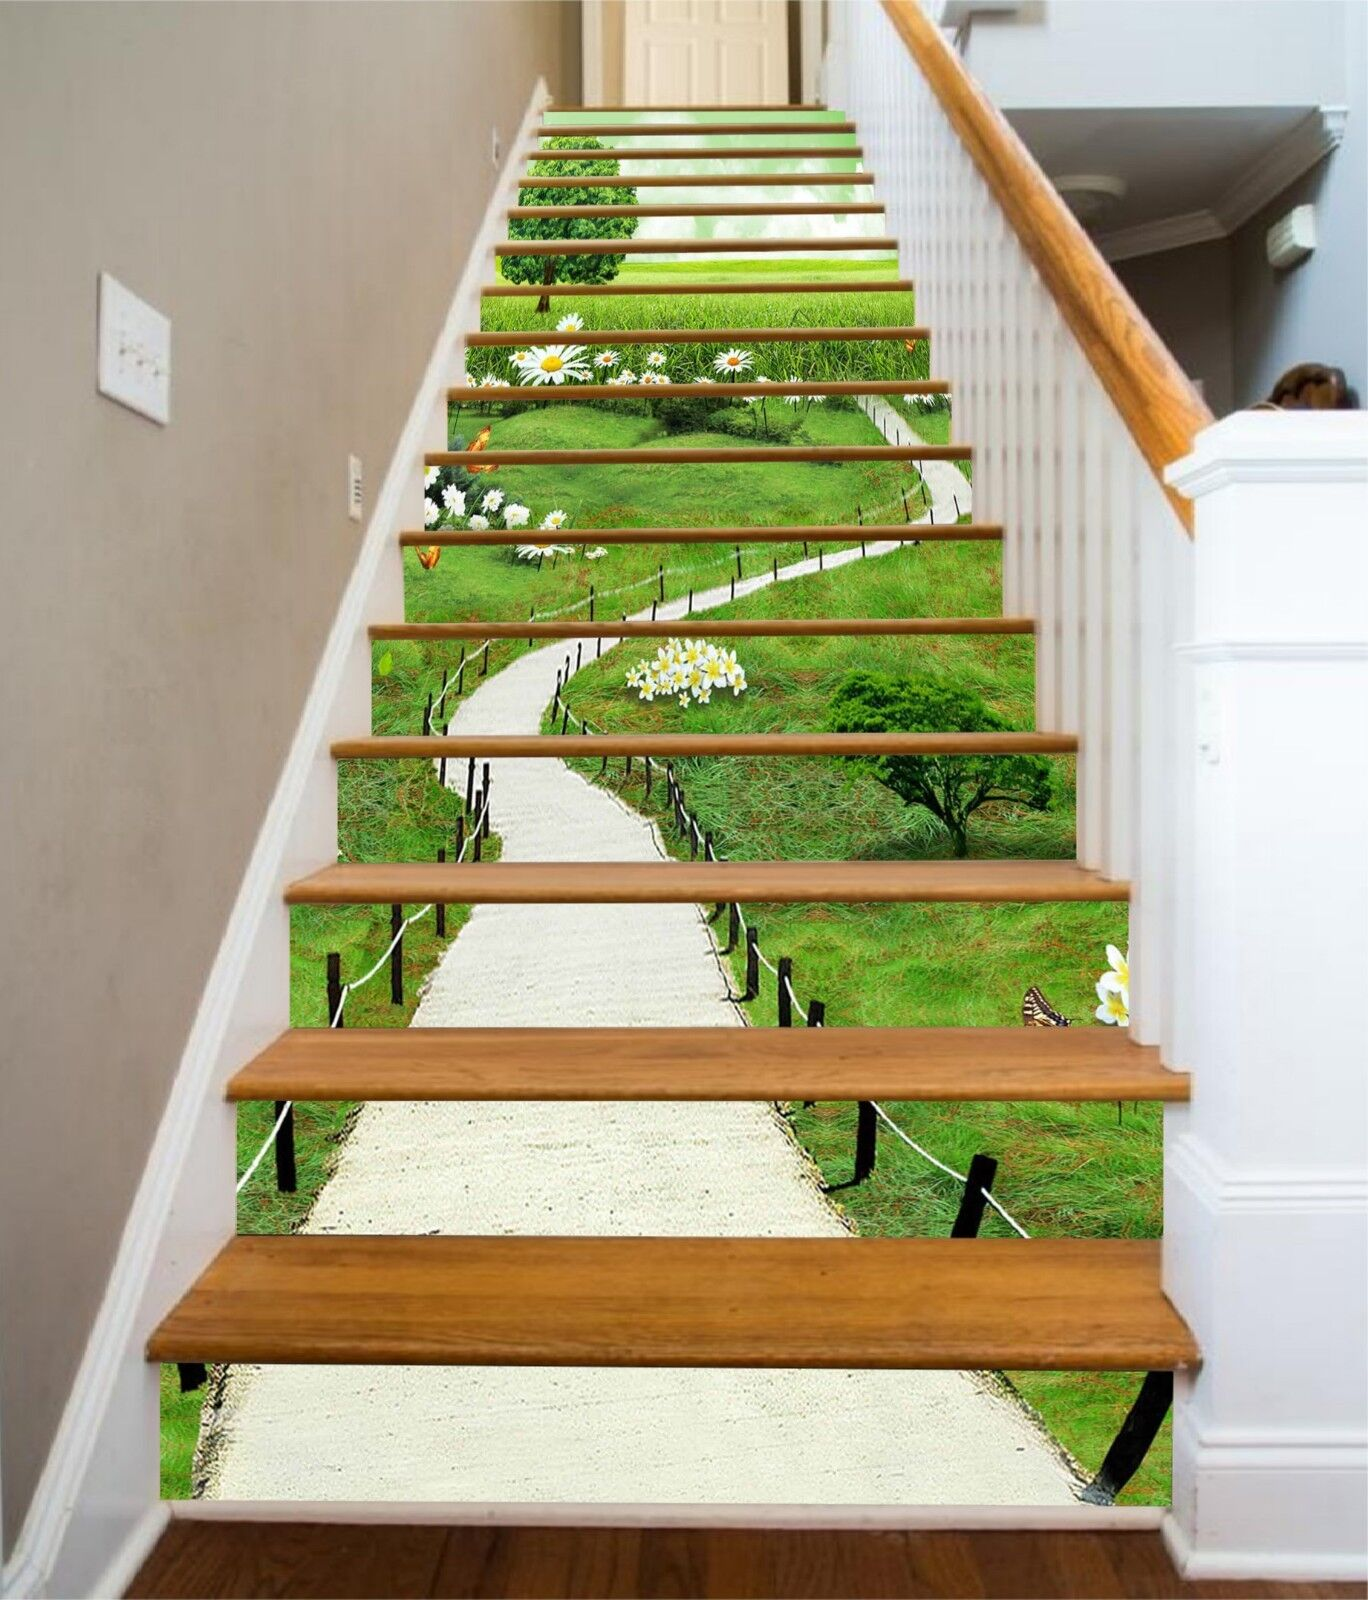 3D Lawn Road Green Stair Risers Decoration Photo Mural Vinyl Decal Wallpaper US